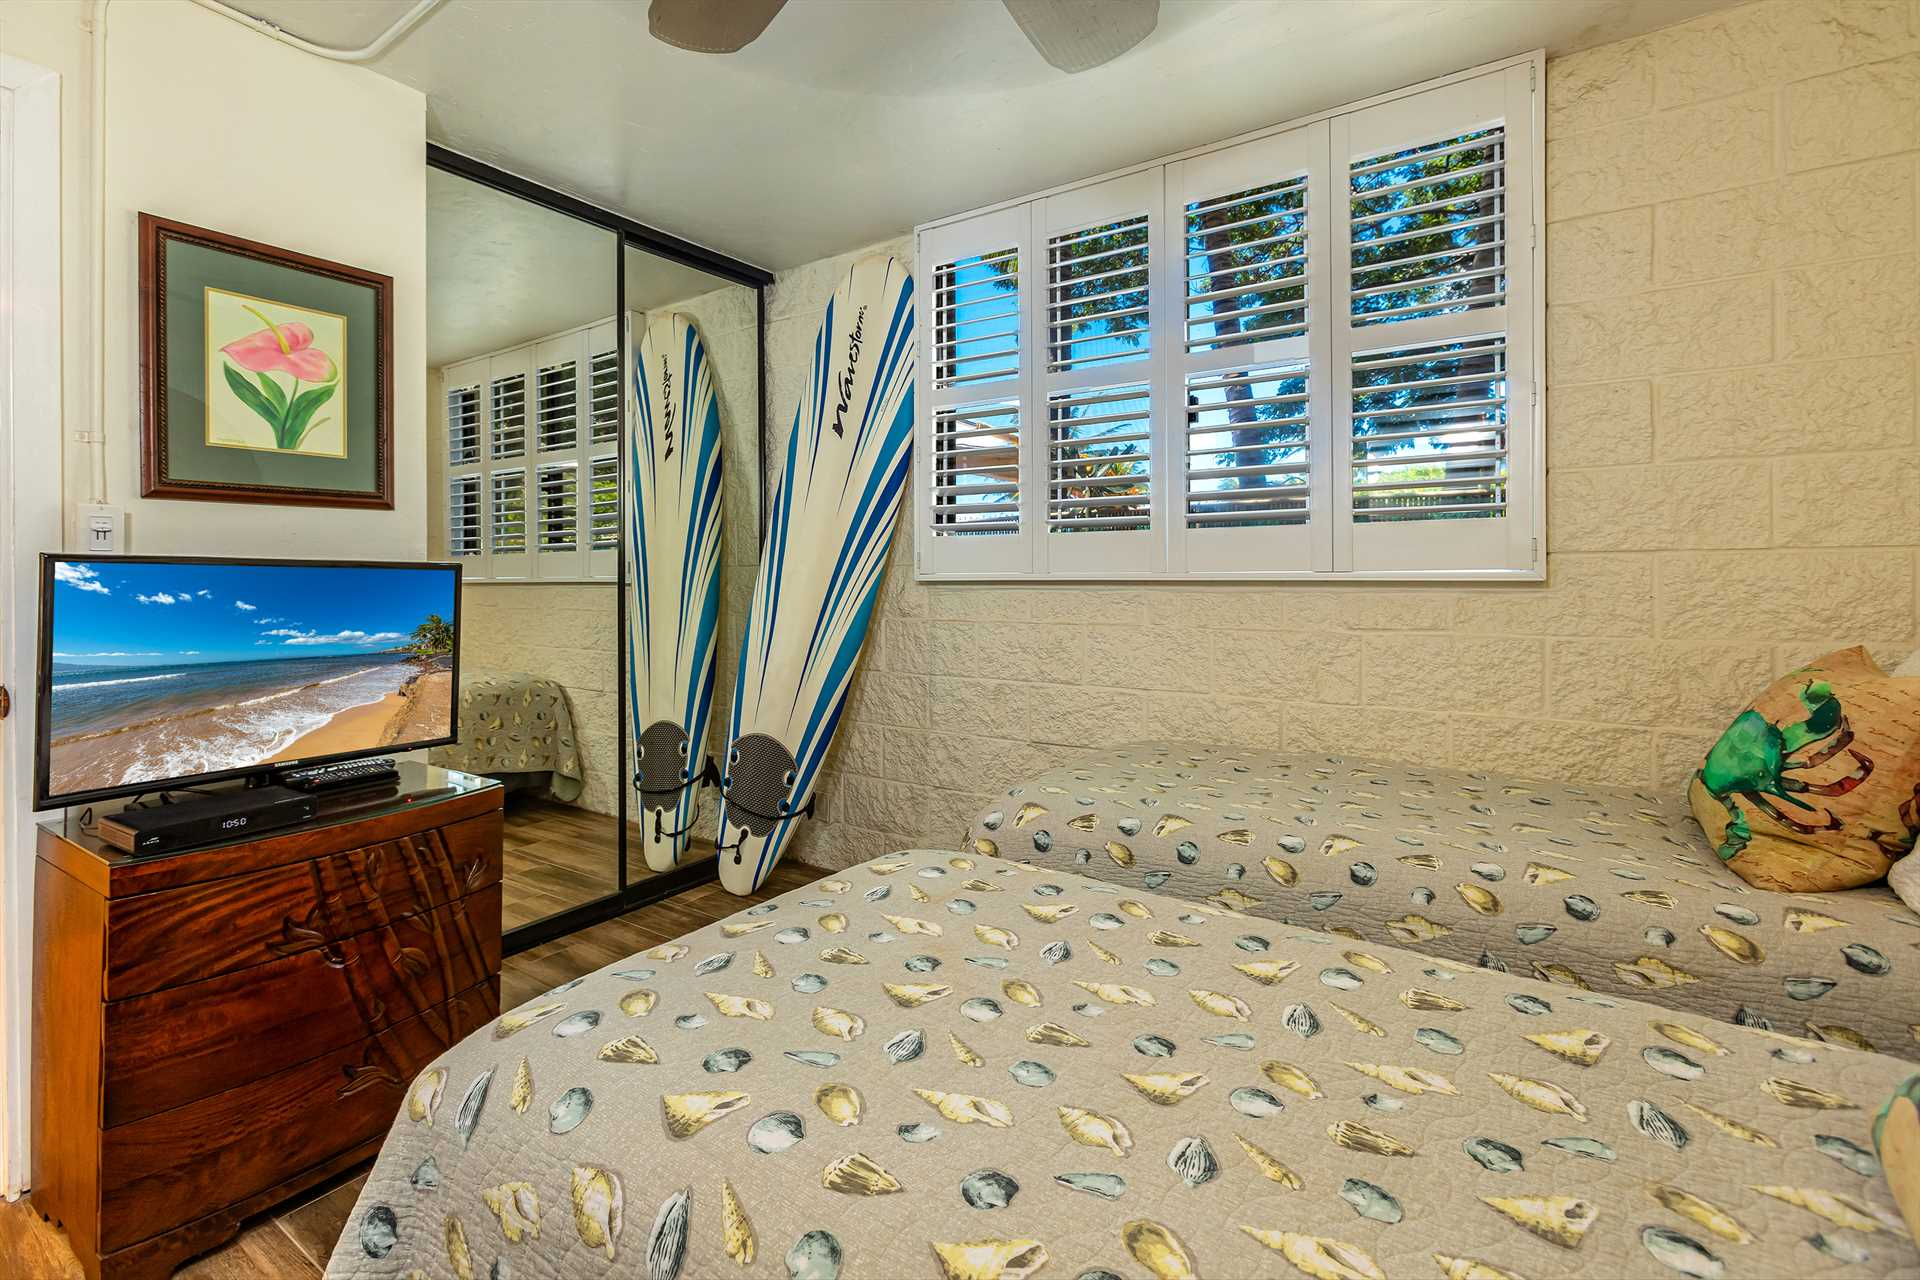 2nd bedroom with twin beds that can be made into a King size